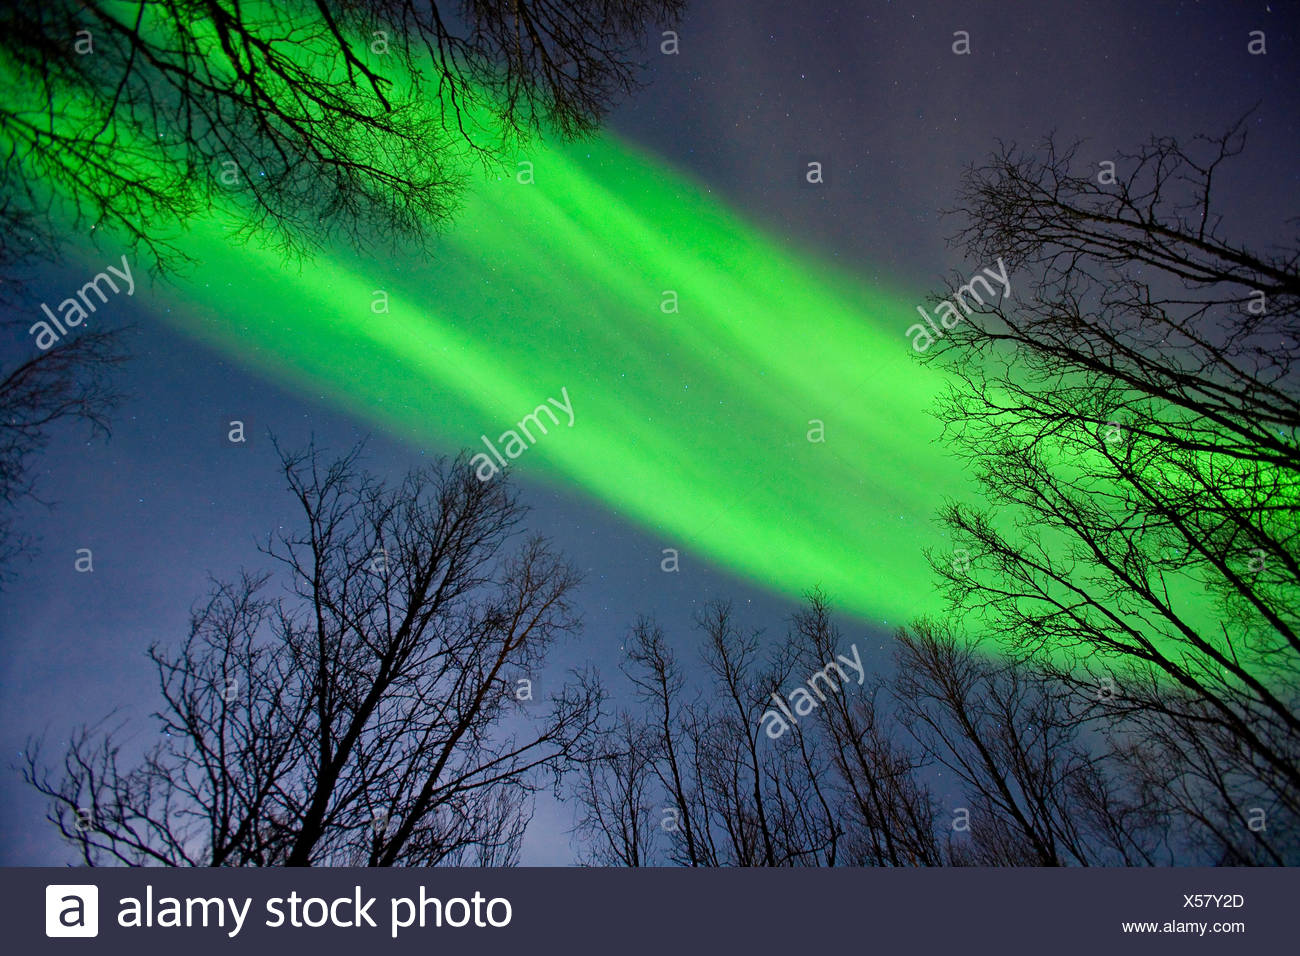 Aurora borealis, Norway, Troms, Tromsoe - Stock Image